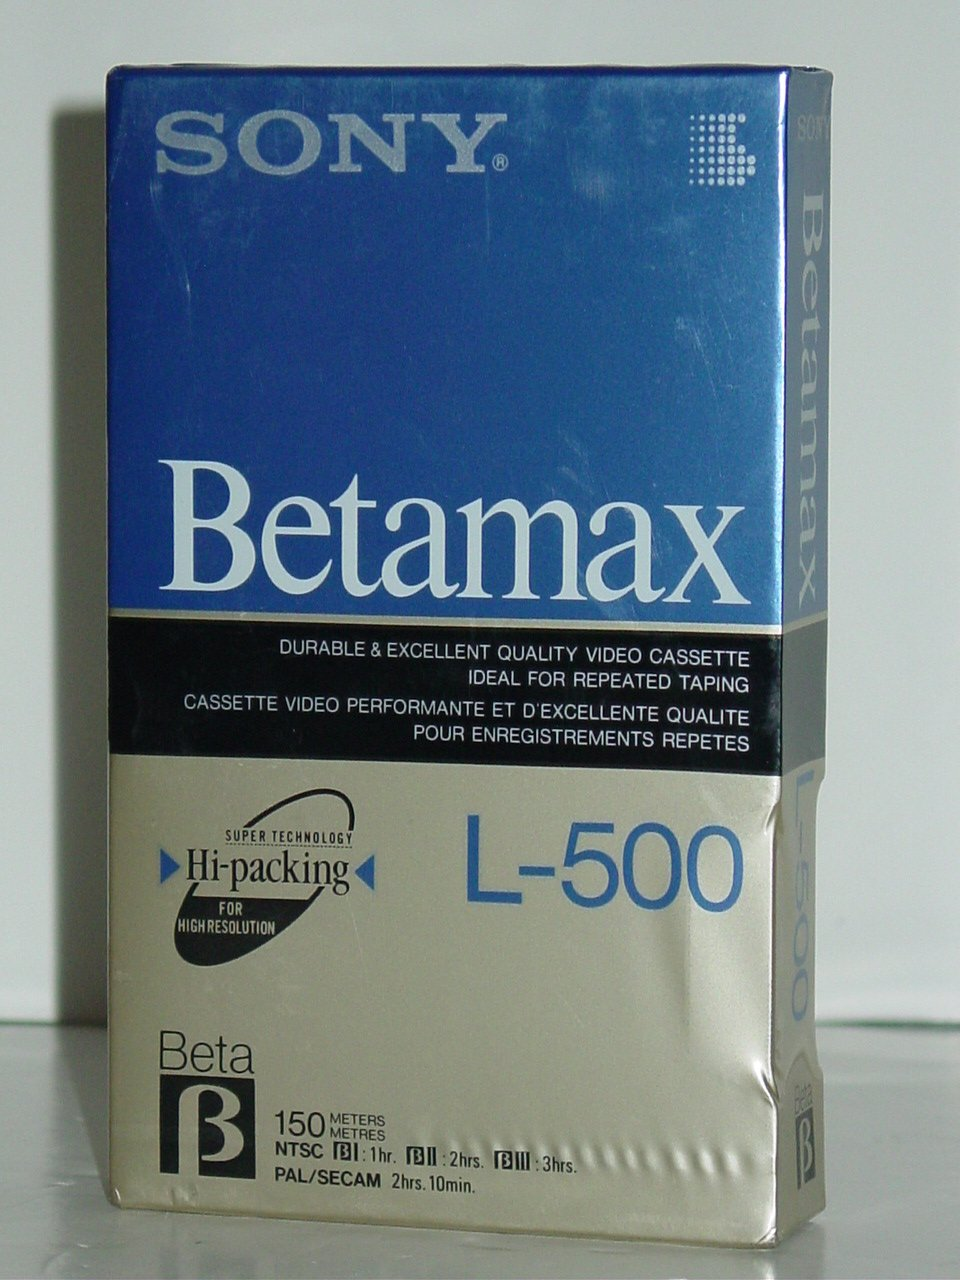 Sony Betamax L-500 180min HiFi Blank Beta Video Cassette Tape